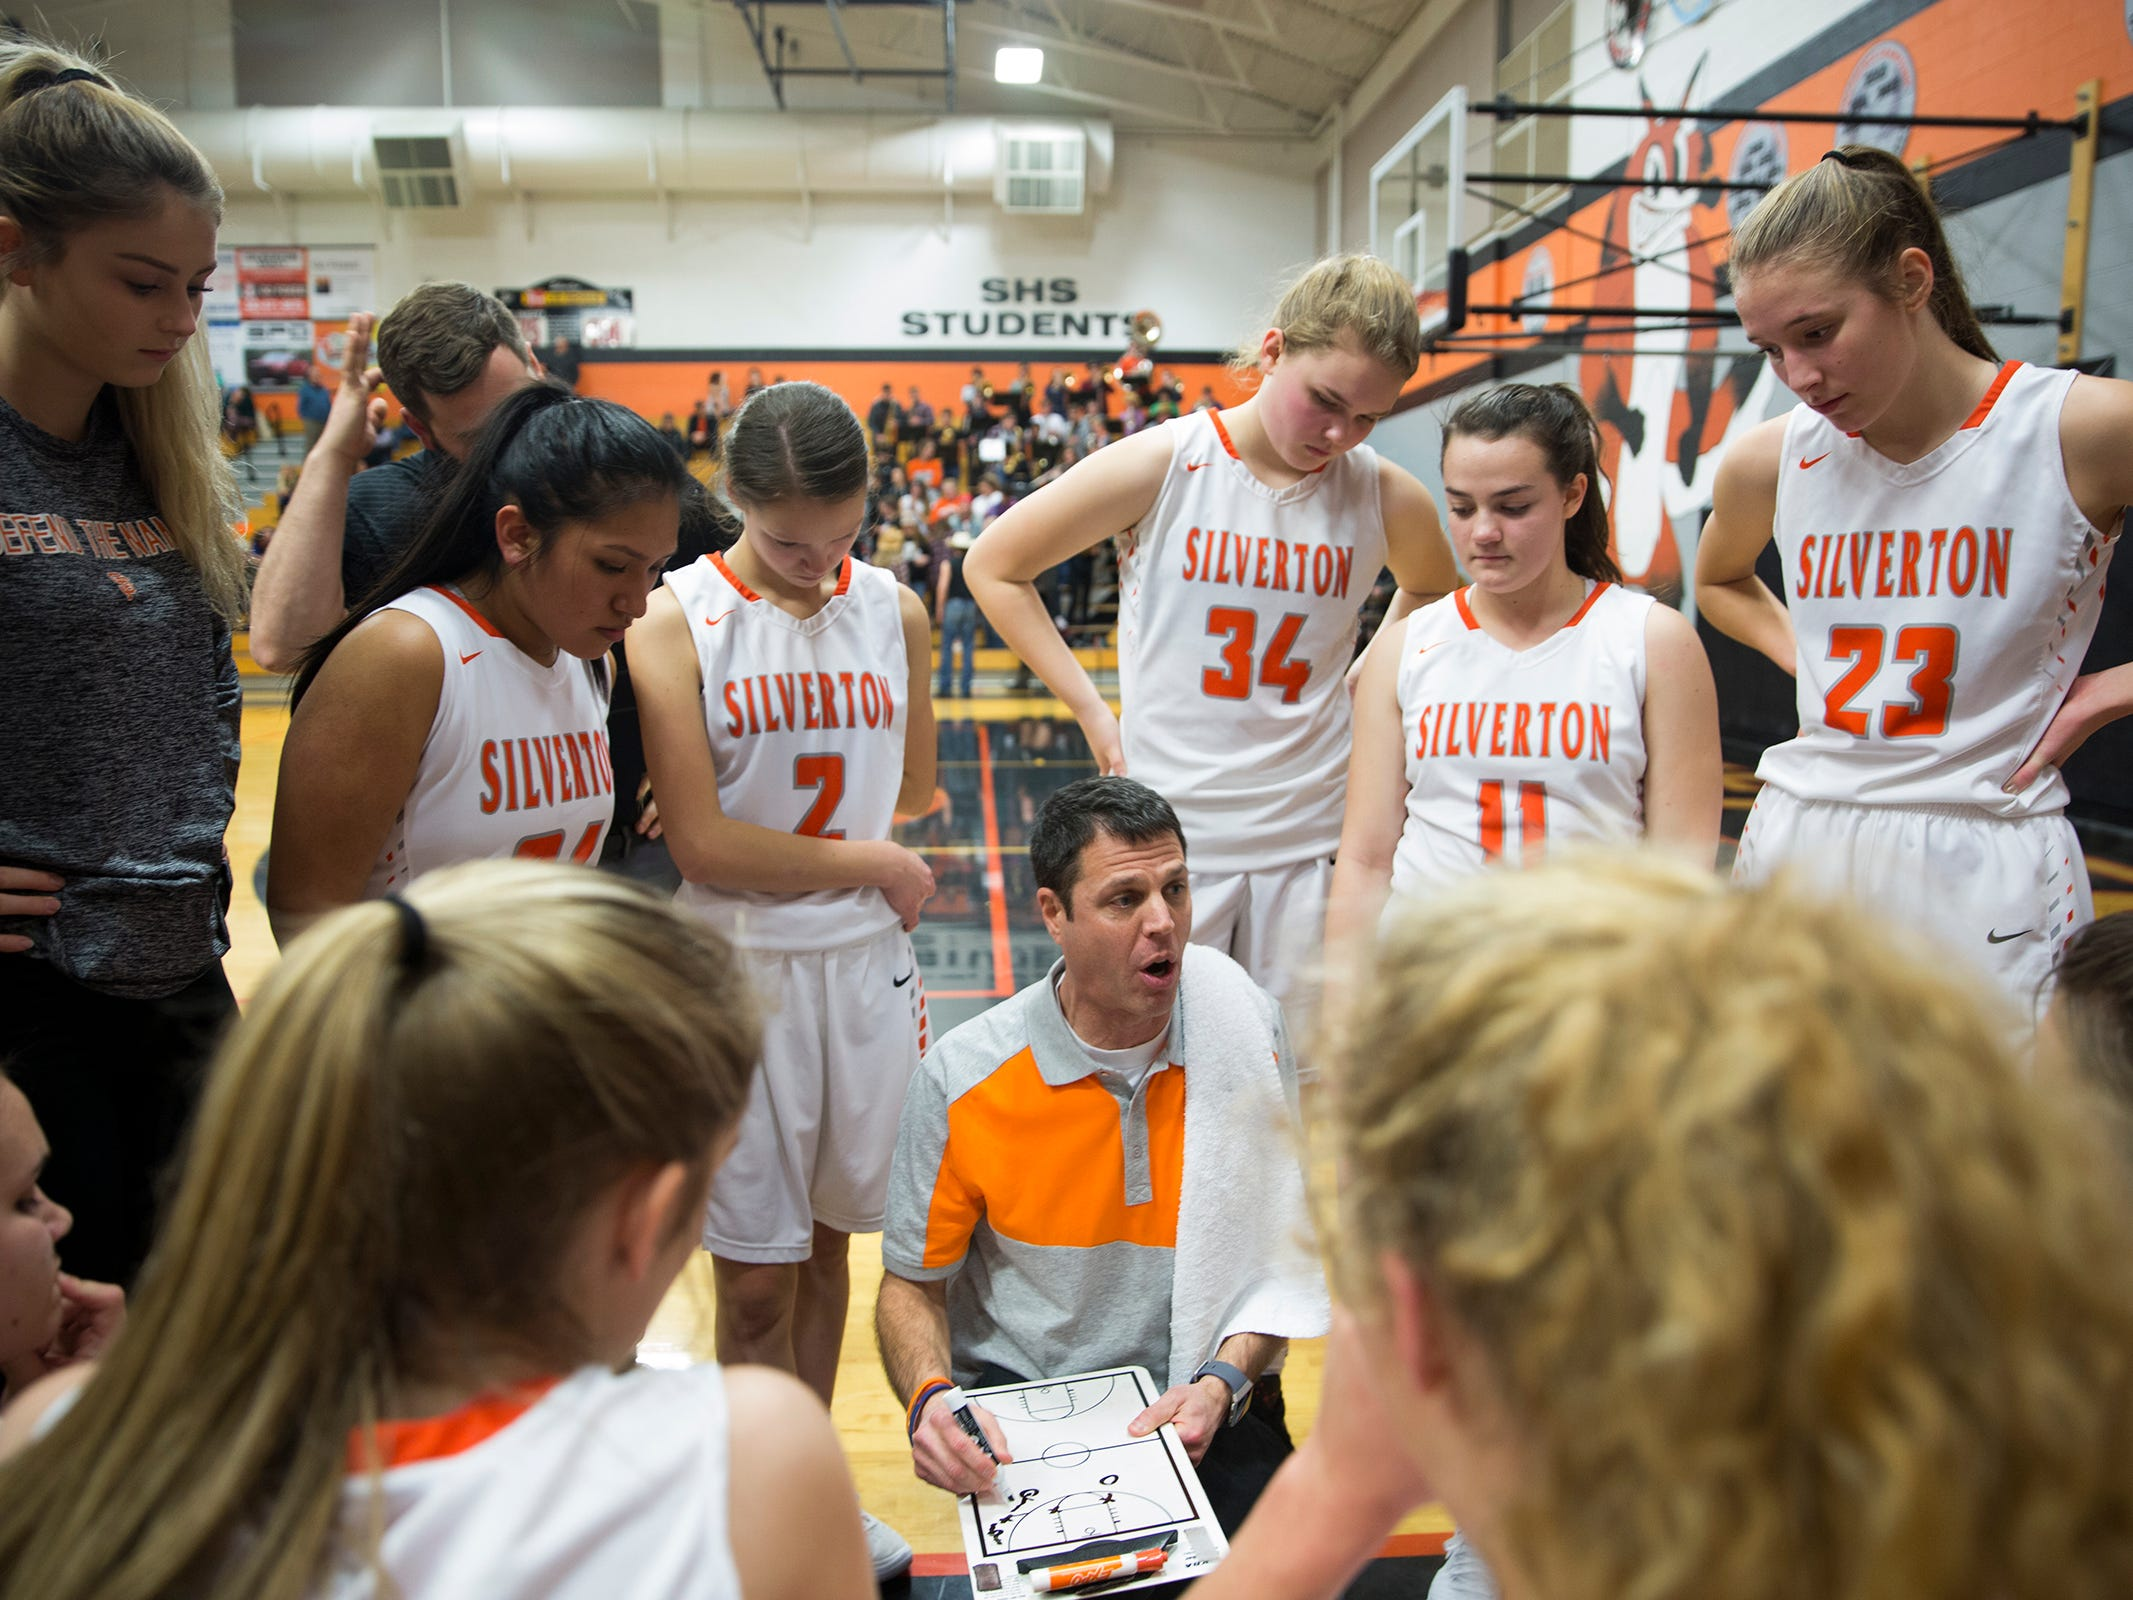 Silverton head coach Tal Wold goes over a play with his team during the Dallas High School vs. Silverton High School girls basketball game in Silverton on Tuesday, Dec. 8, 2019.